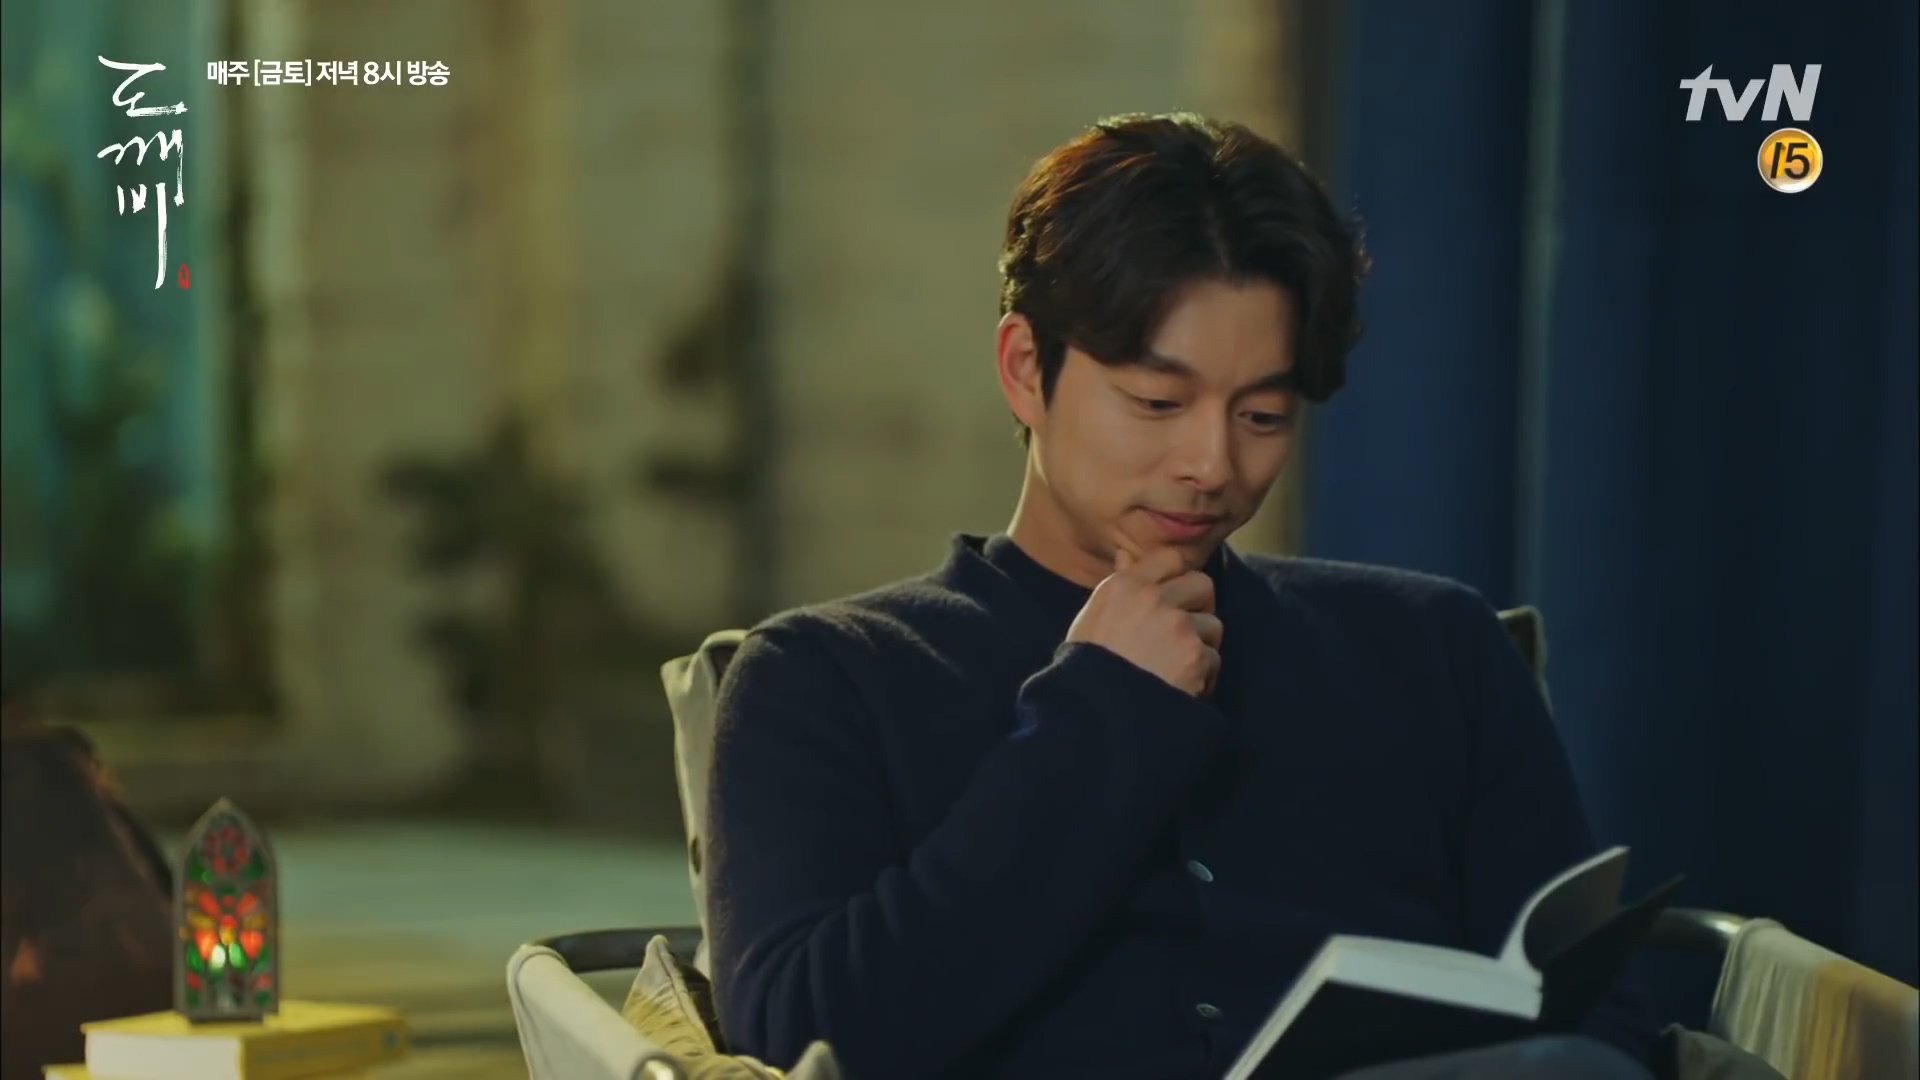 [2] Goblin E5 - Can't concentrate